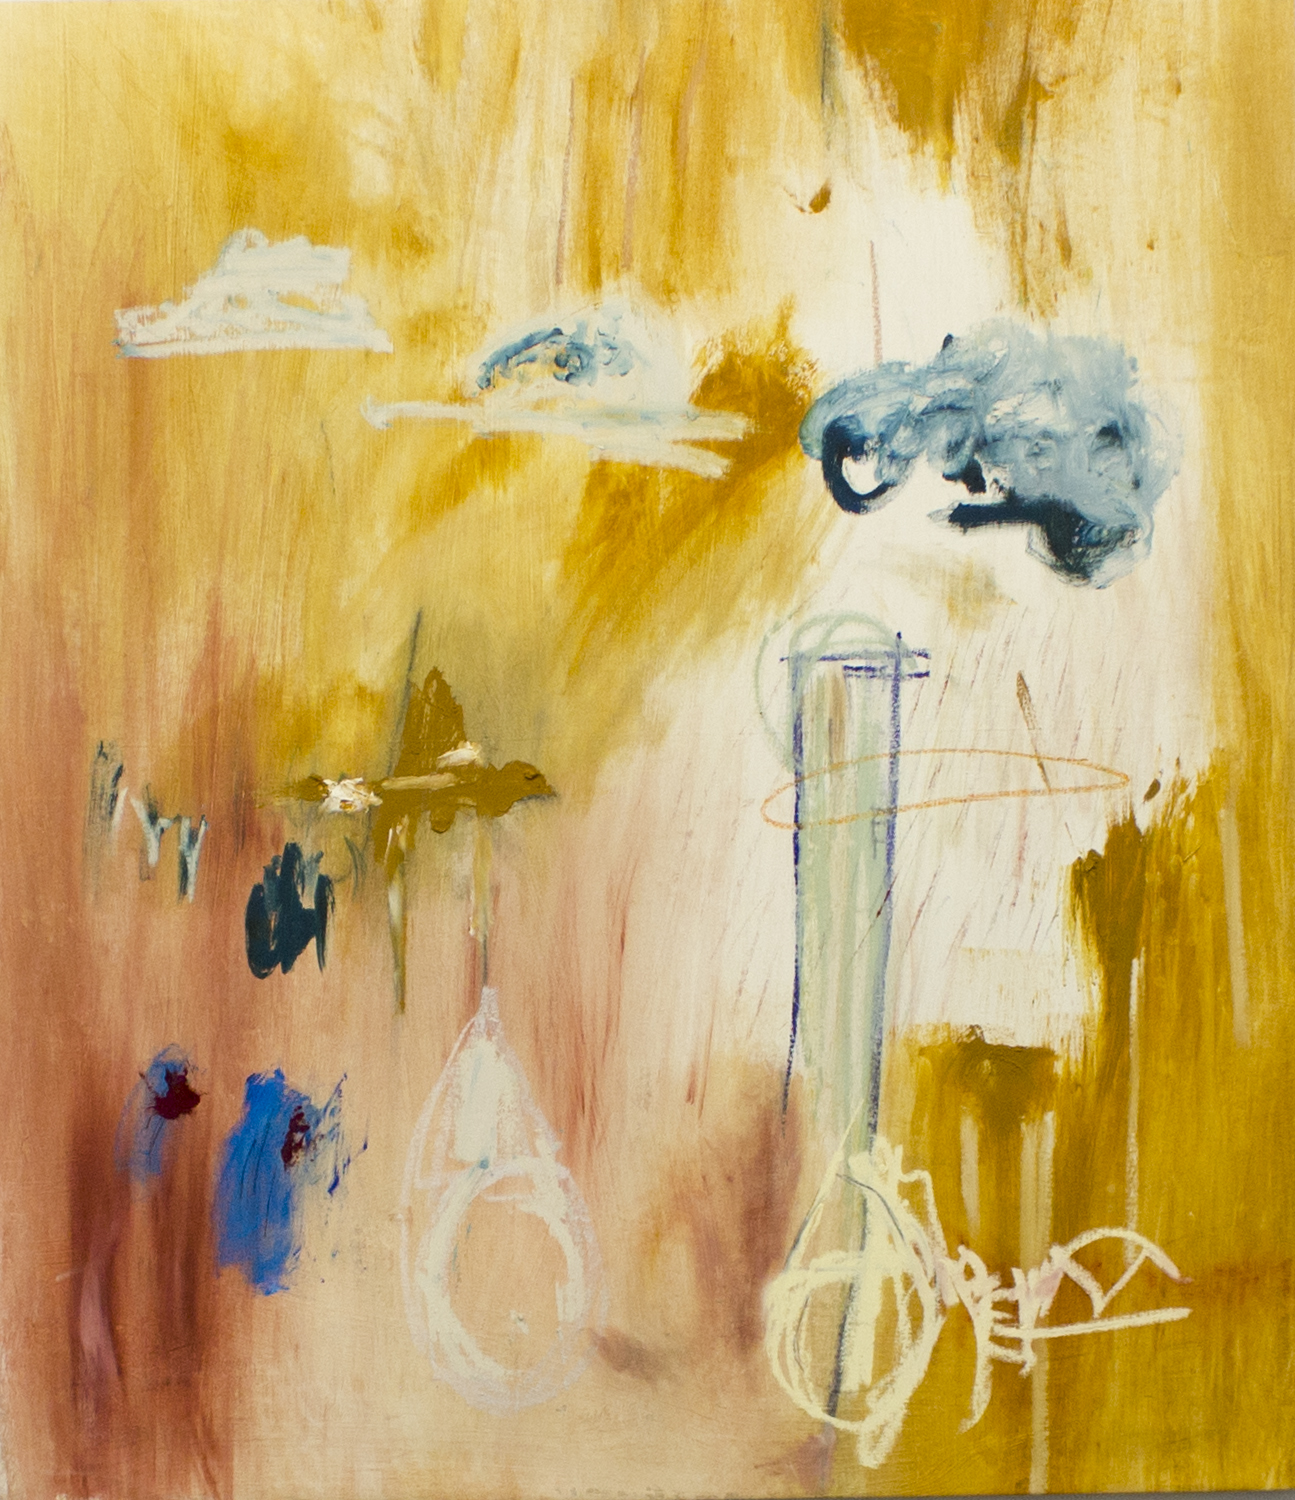 Transitions to Uncertainty (in Three) , 2016  52 x 46 Inches  Oil, Acrylic, Graphite, Charcoal, Colored Pencil, Oil Stick, and Oil Pastel on Canvas